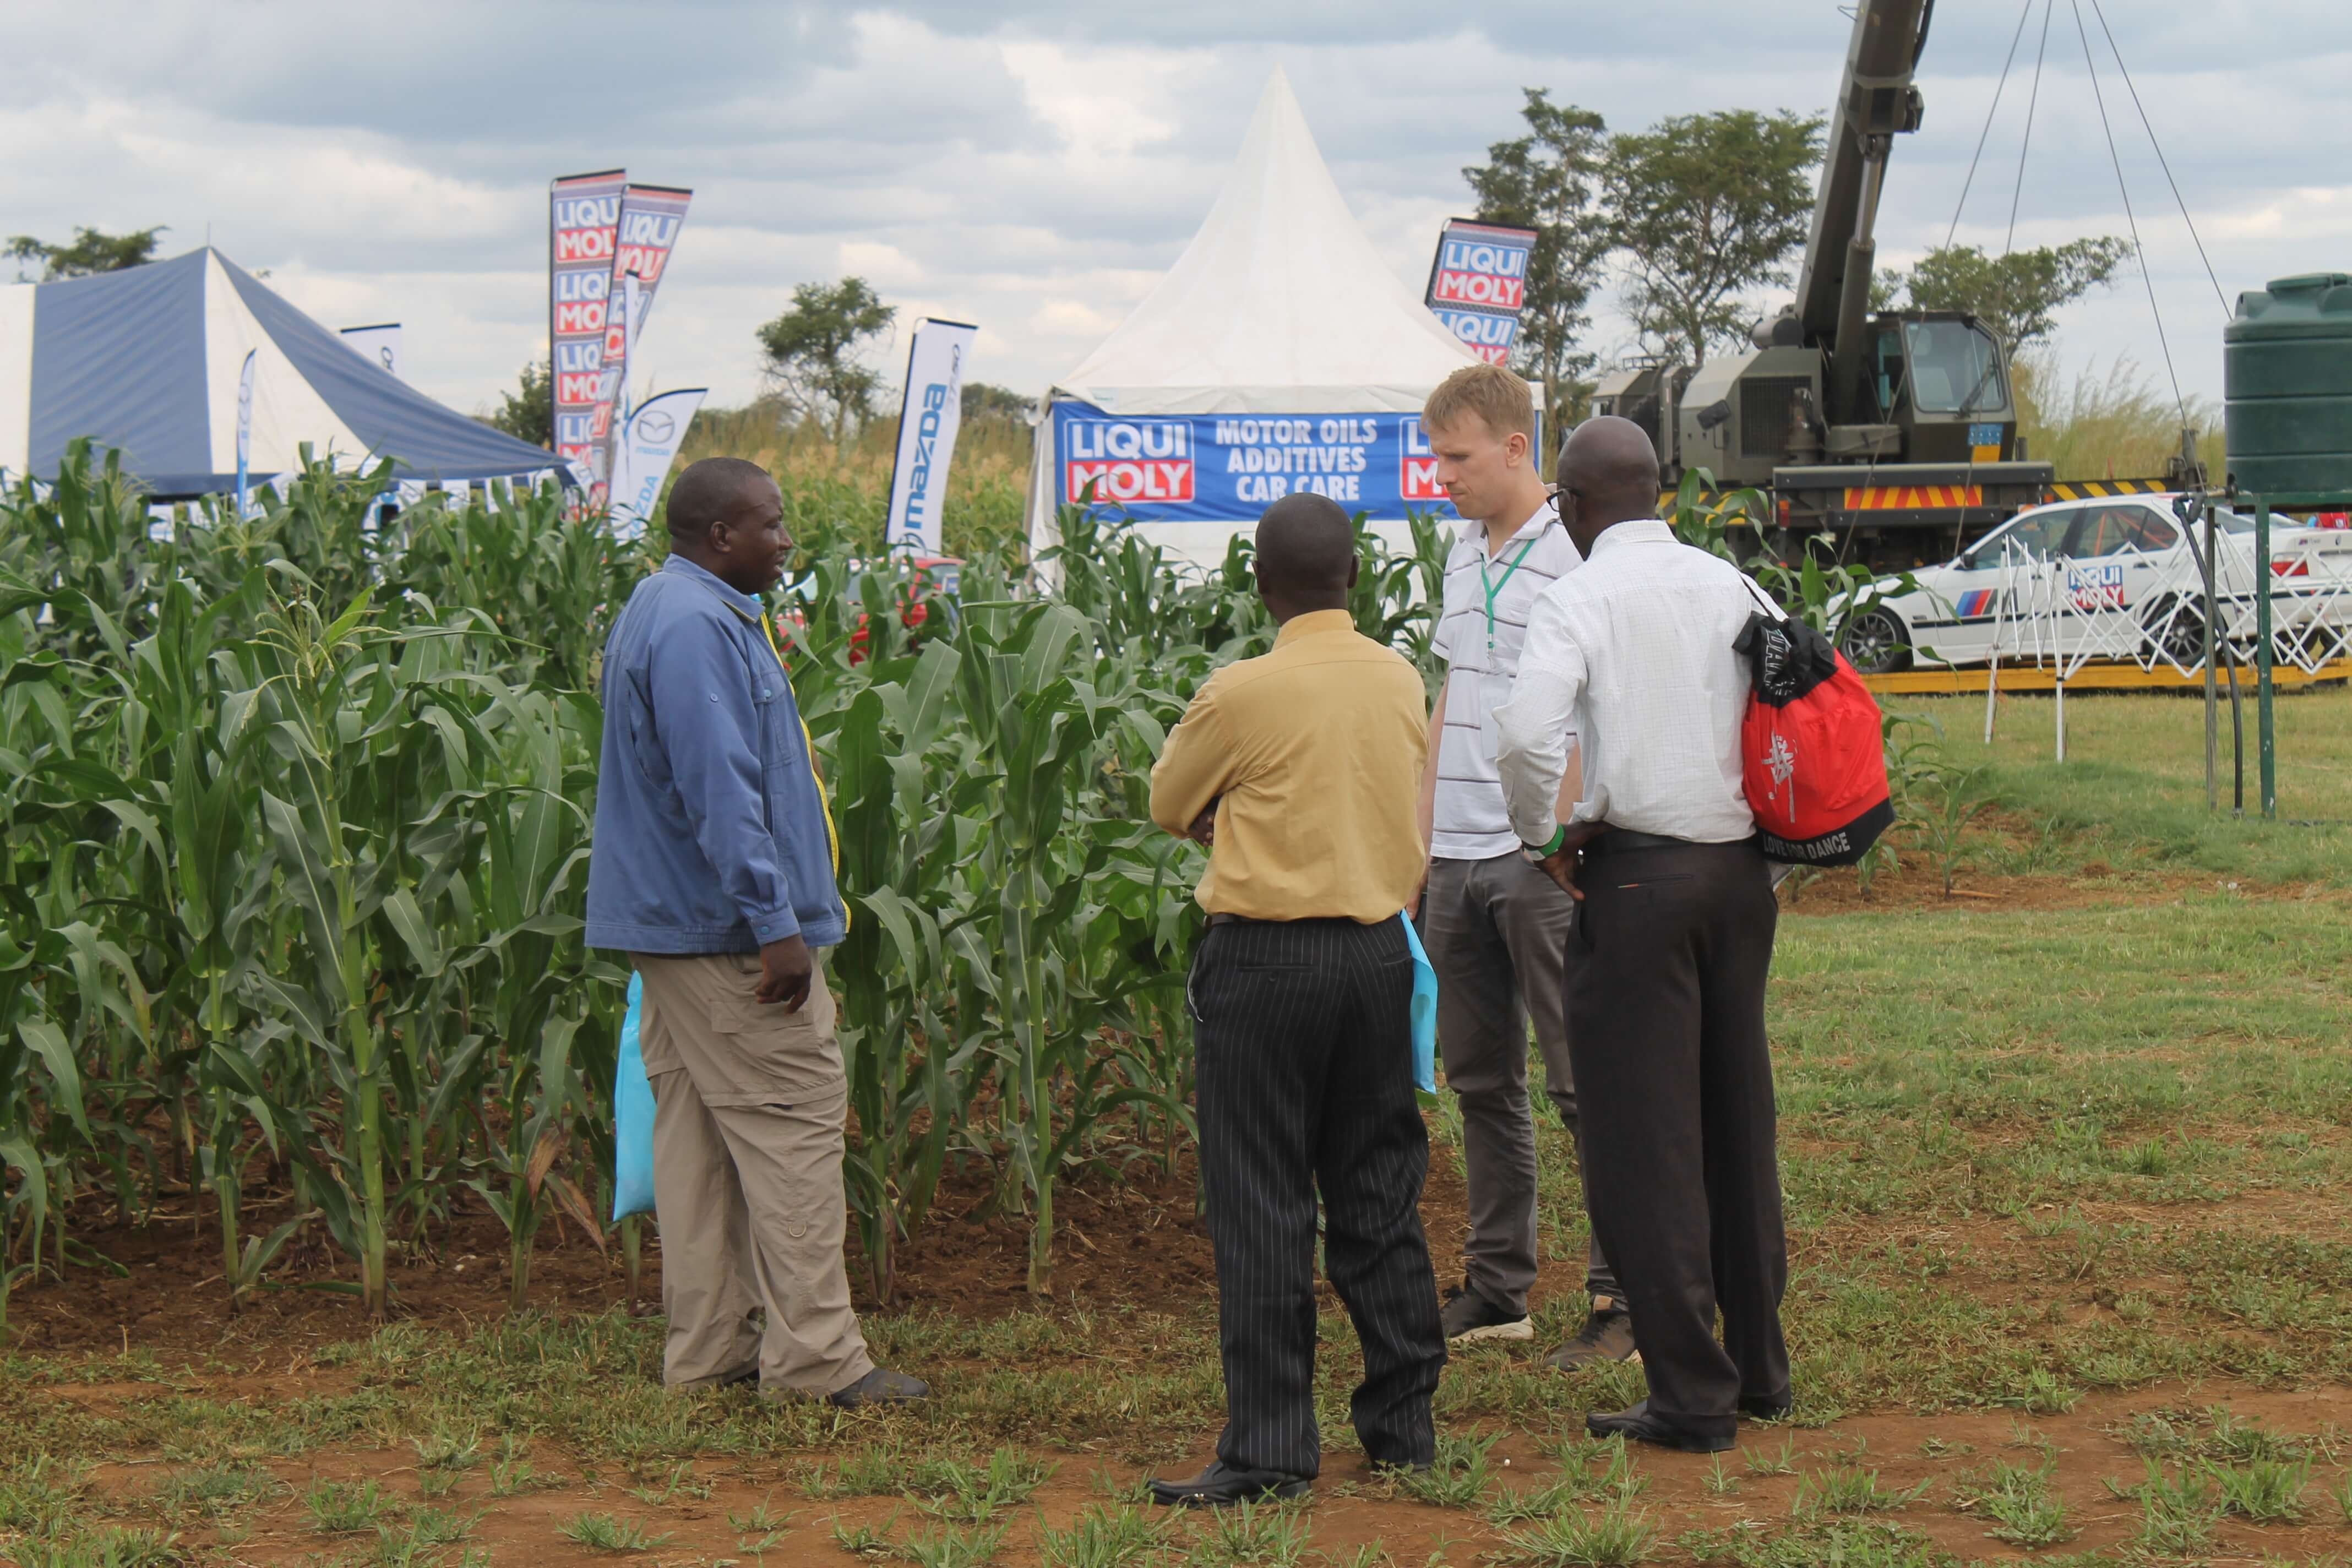 UFCL took part in Agritech Expo Zambia held in Chisamba